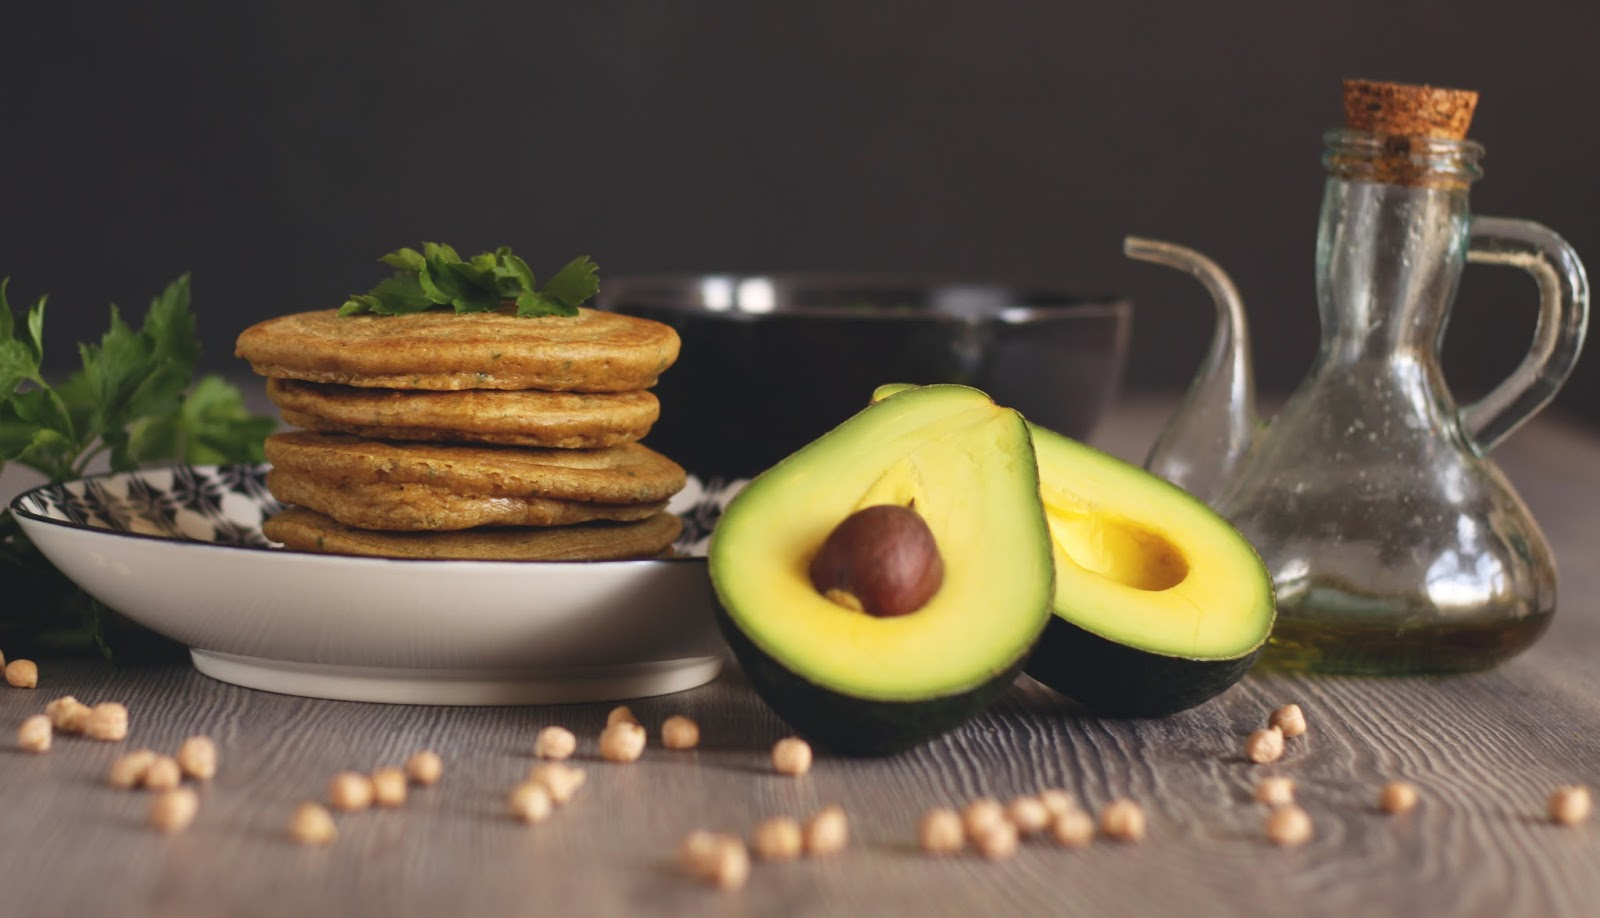 Get ready for a paleo pancake, middle eastern style! All your fevorite ingredients are here: almonds, chickpeas, zahatar, parsley.. Plus an easy but awesome avocado hummus dip. Recipe brought to you by a german food blog Pancake Stories. #pancakestories